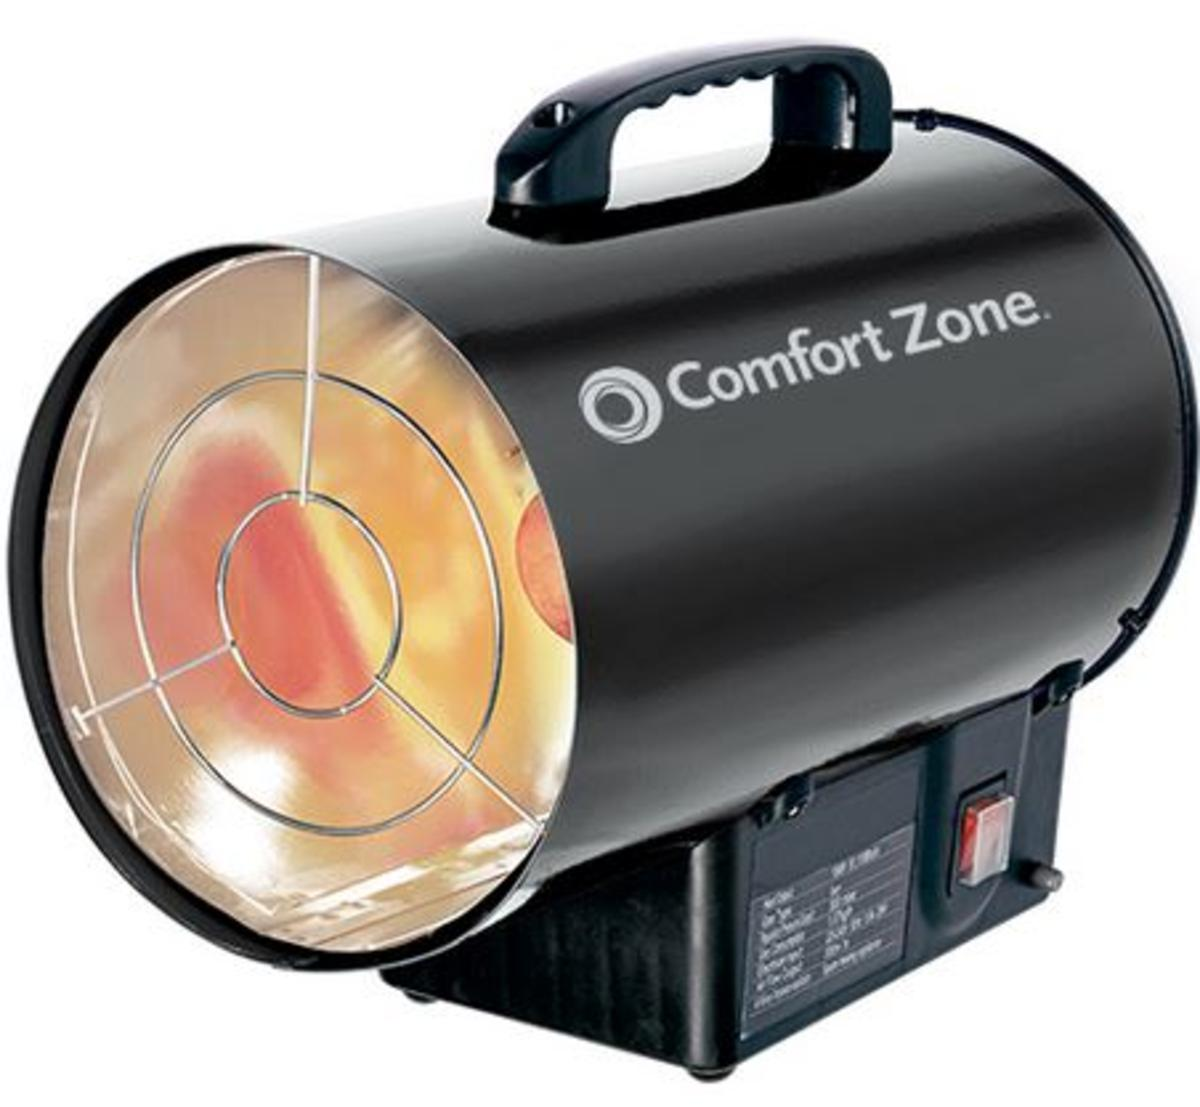 Forced Air Propane Heater >> Comfort Zone Czpp200 Radiant Propane Portable Forced Air Heater